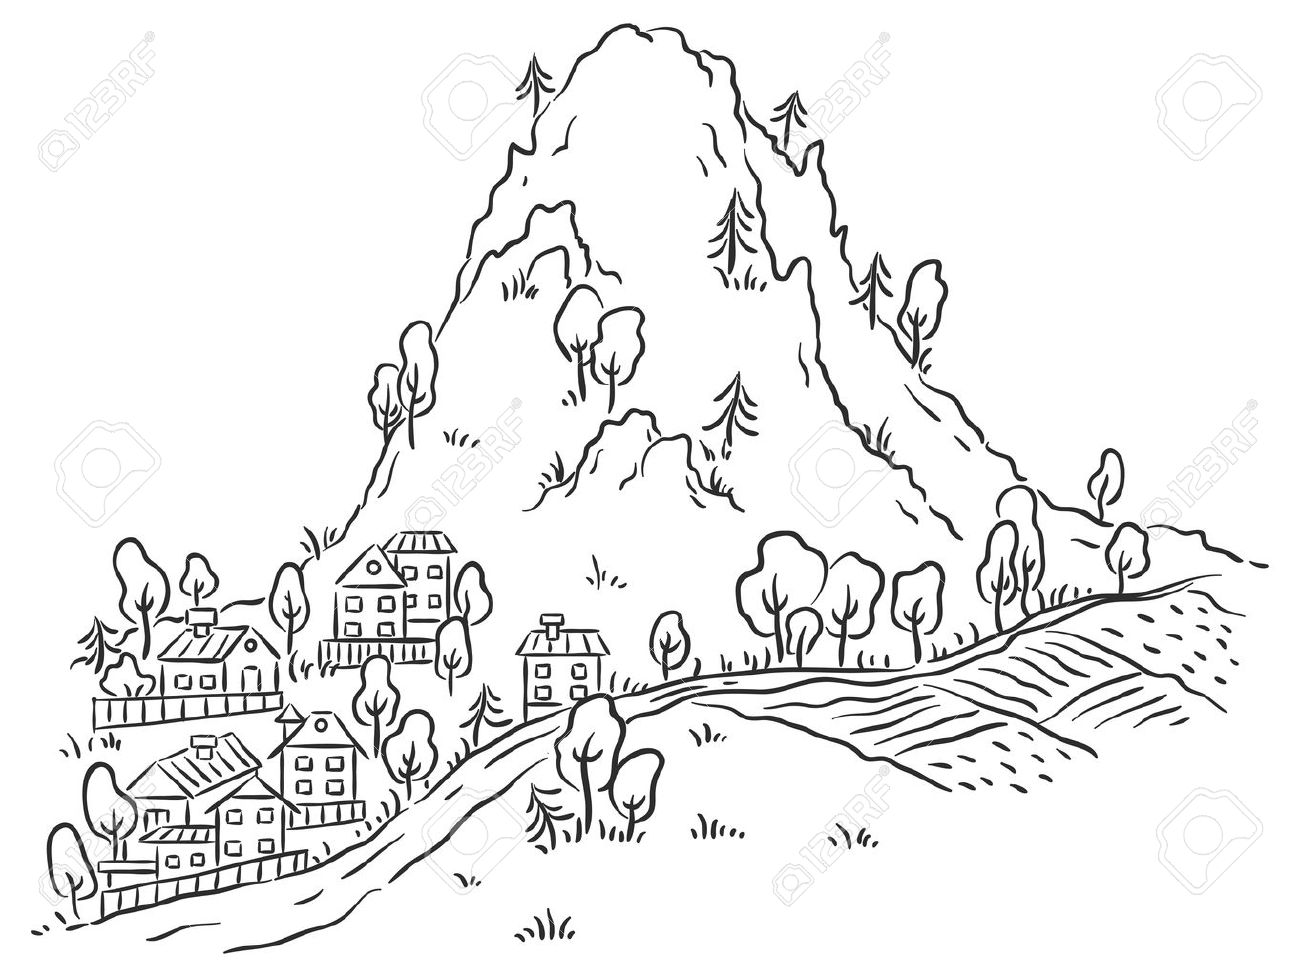 Cartoon town at the foot of the mountain, black and white outline.